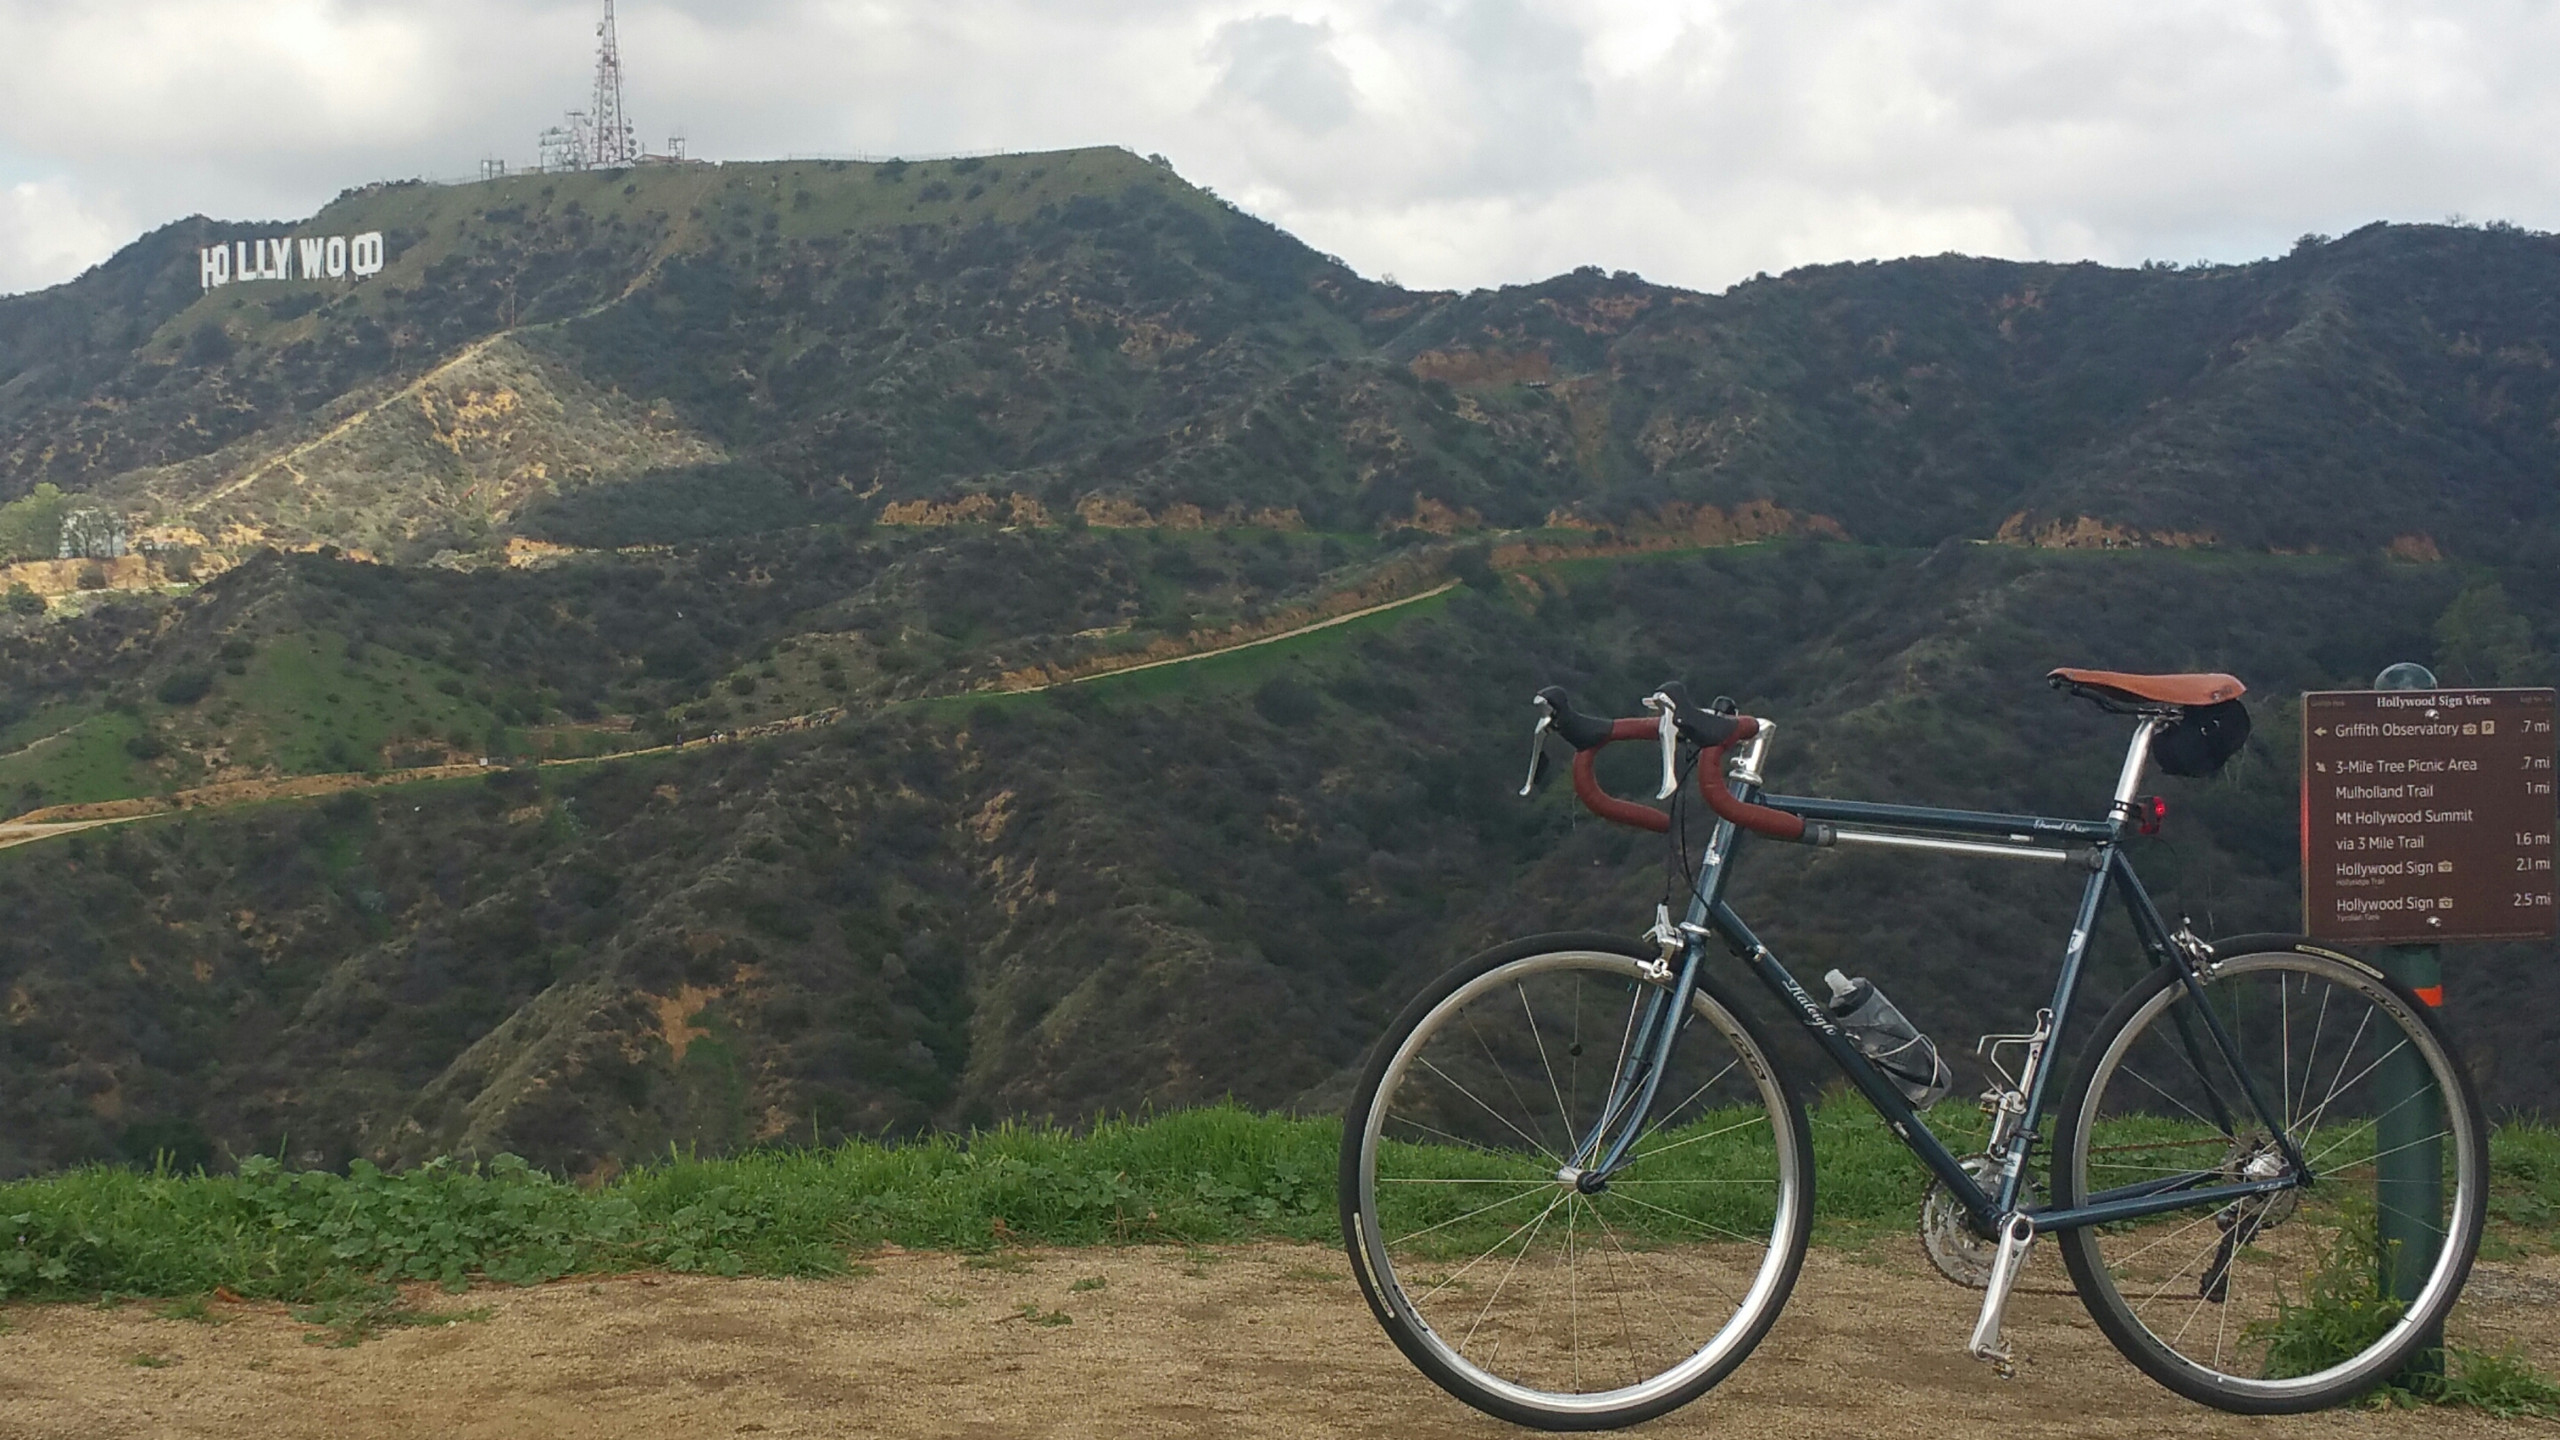 Griffith Park has some great roads to offer area cyclists.